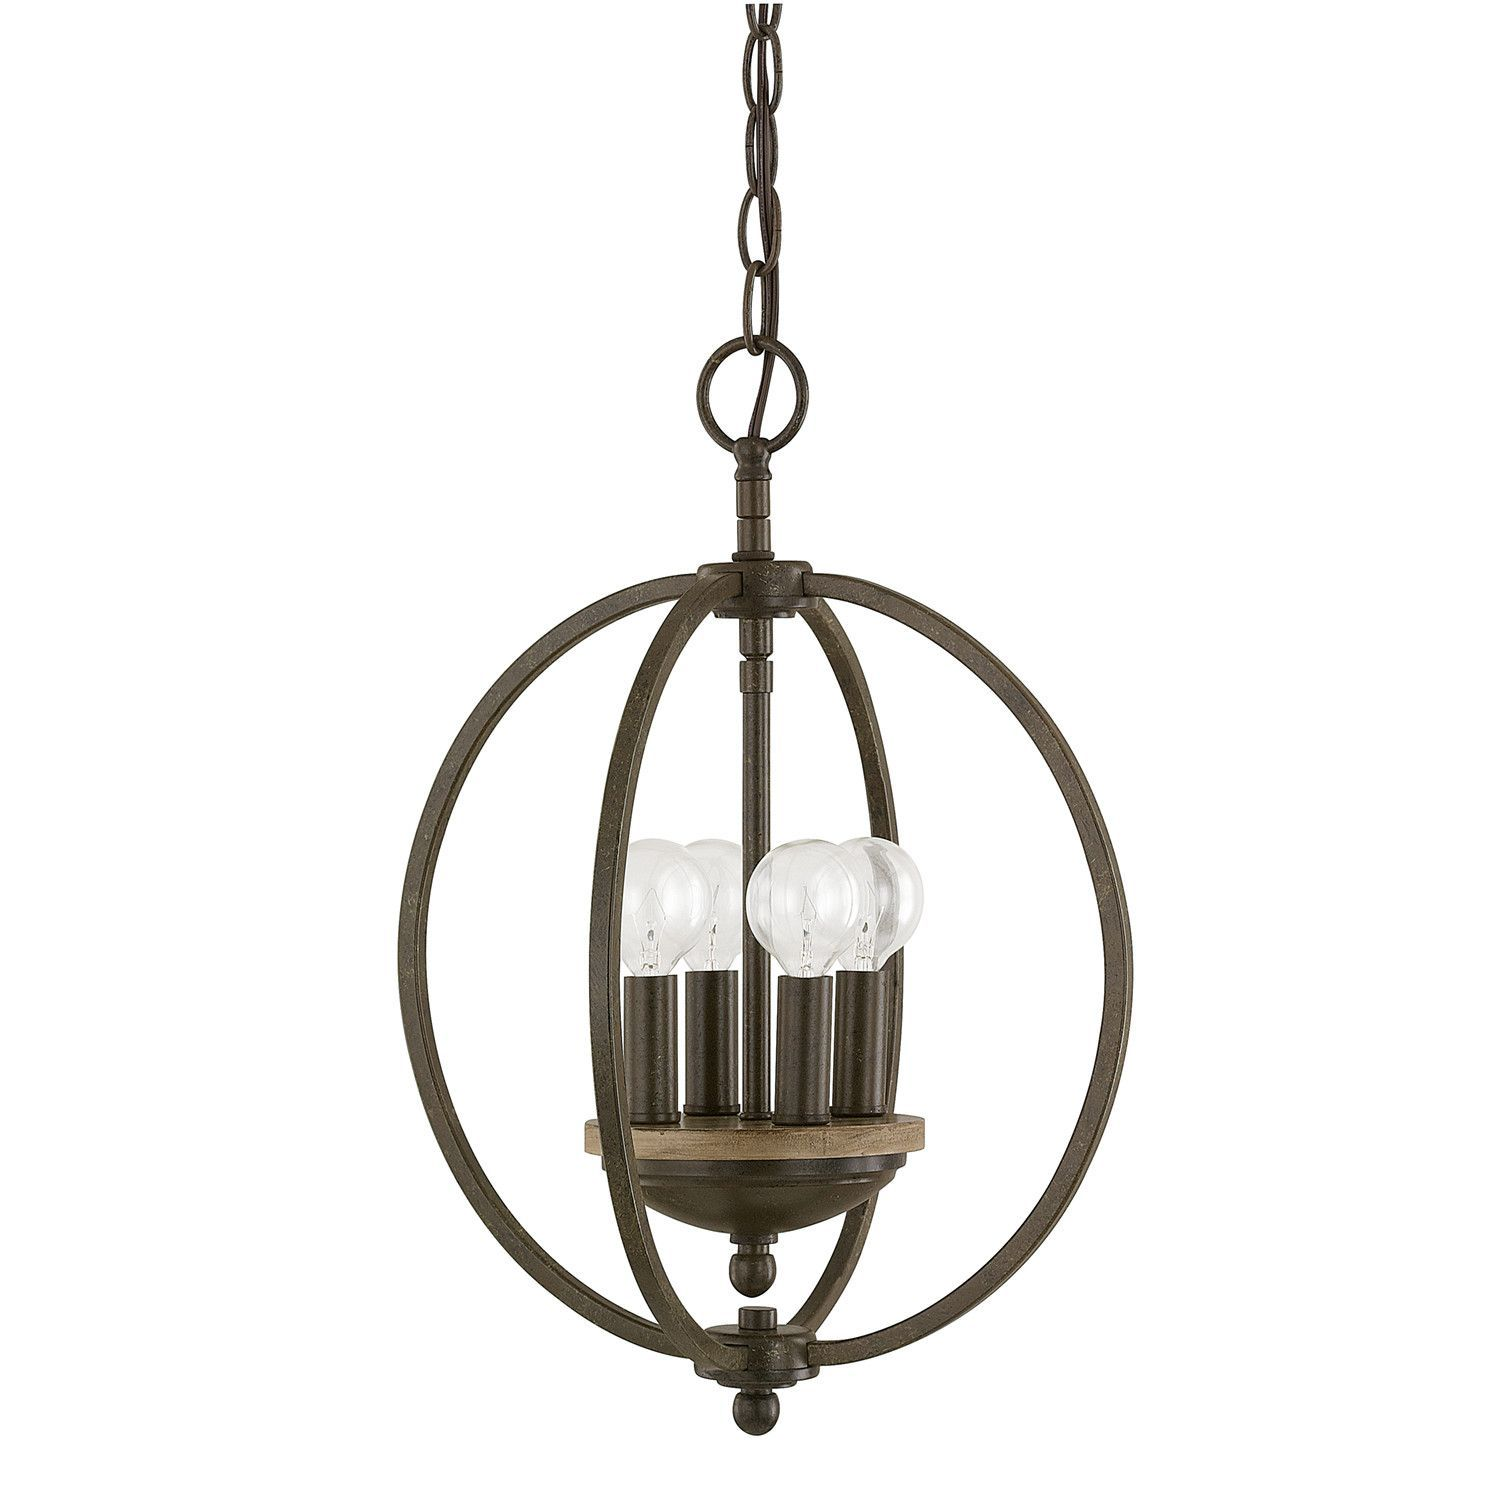 Collette light globe pendant products pinterest light globes